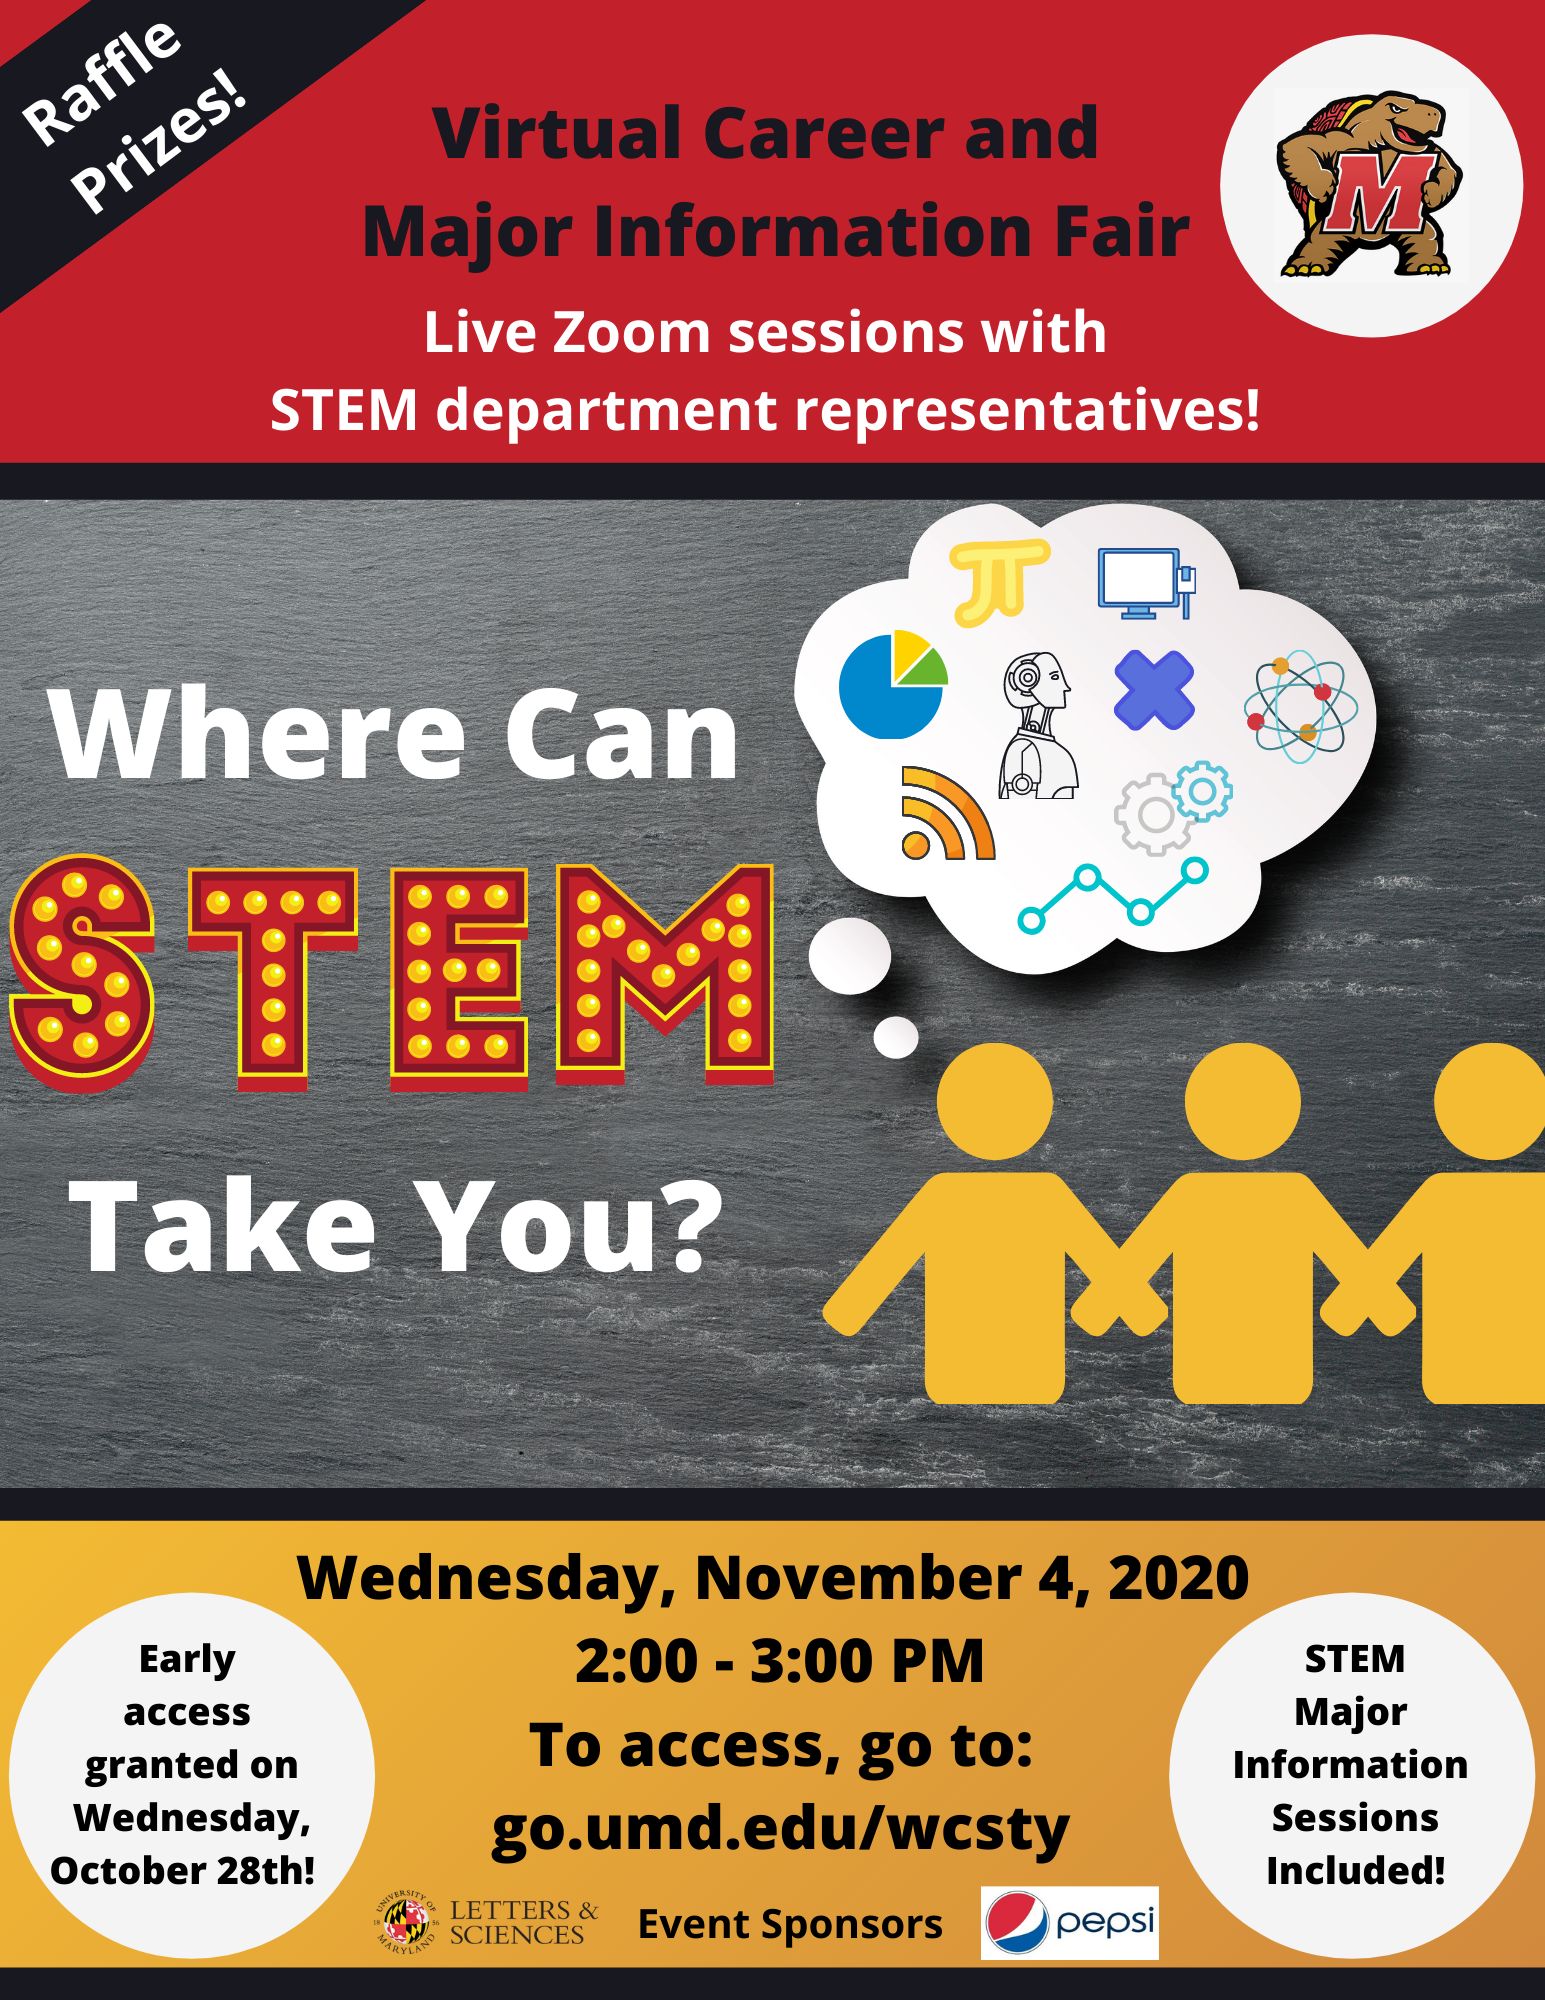 Where Can STEM Take You? - LTSC